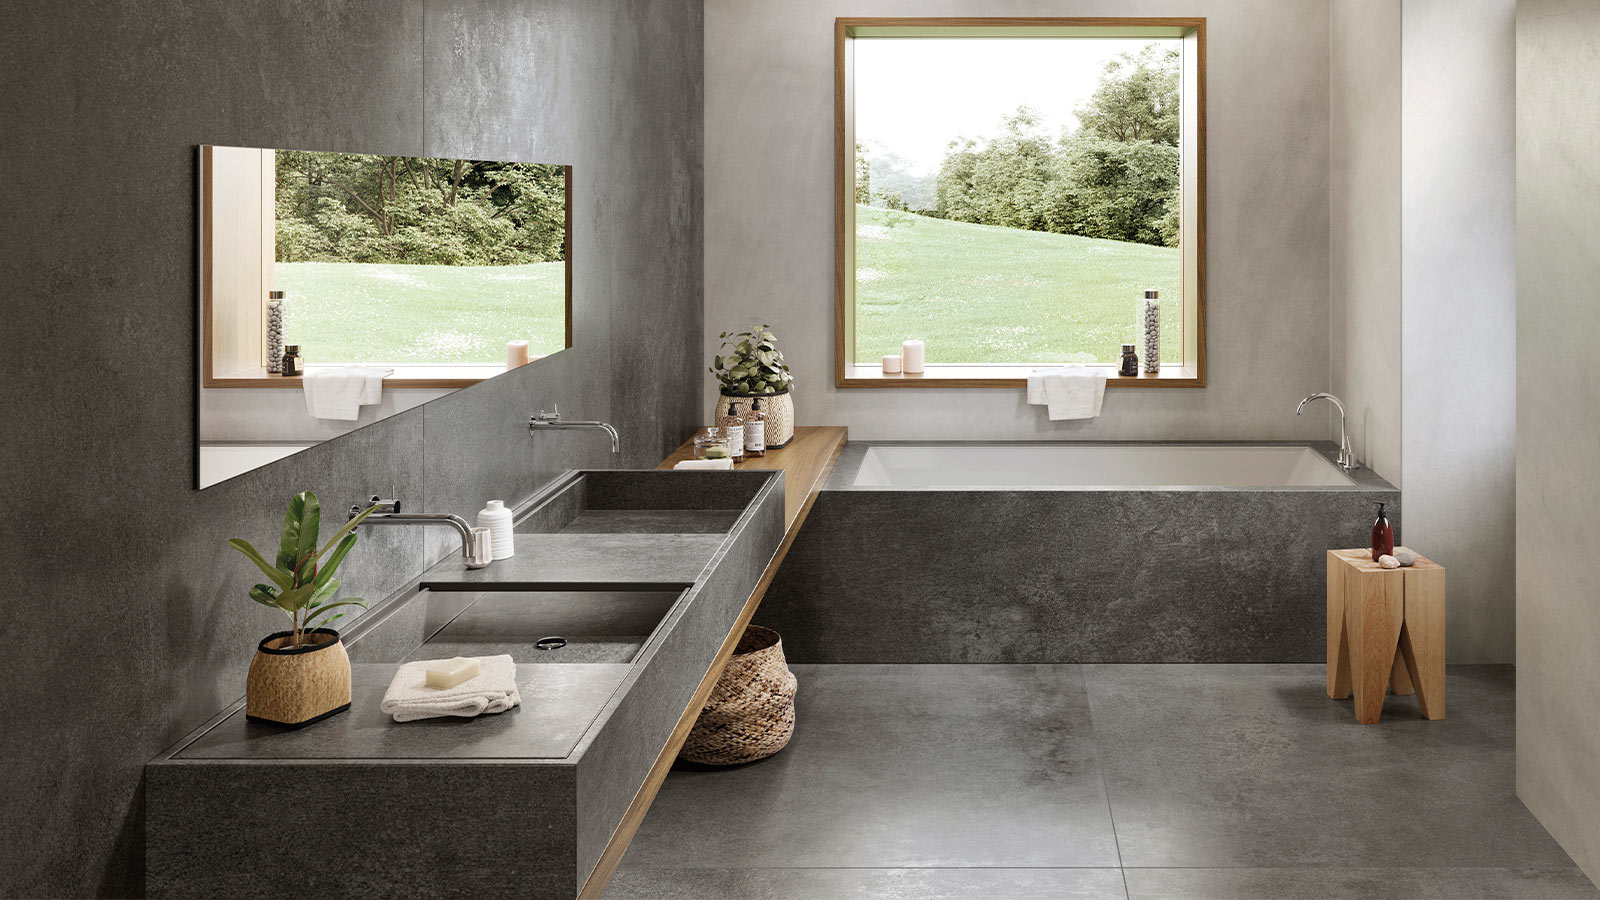 Here are the interior design trends Porcelanosa is proposing for interior design in 2020